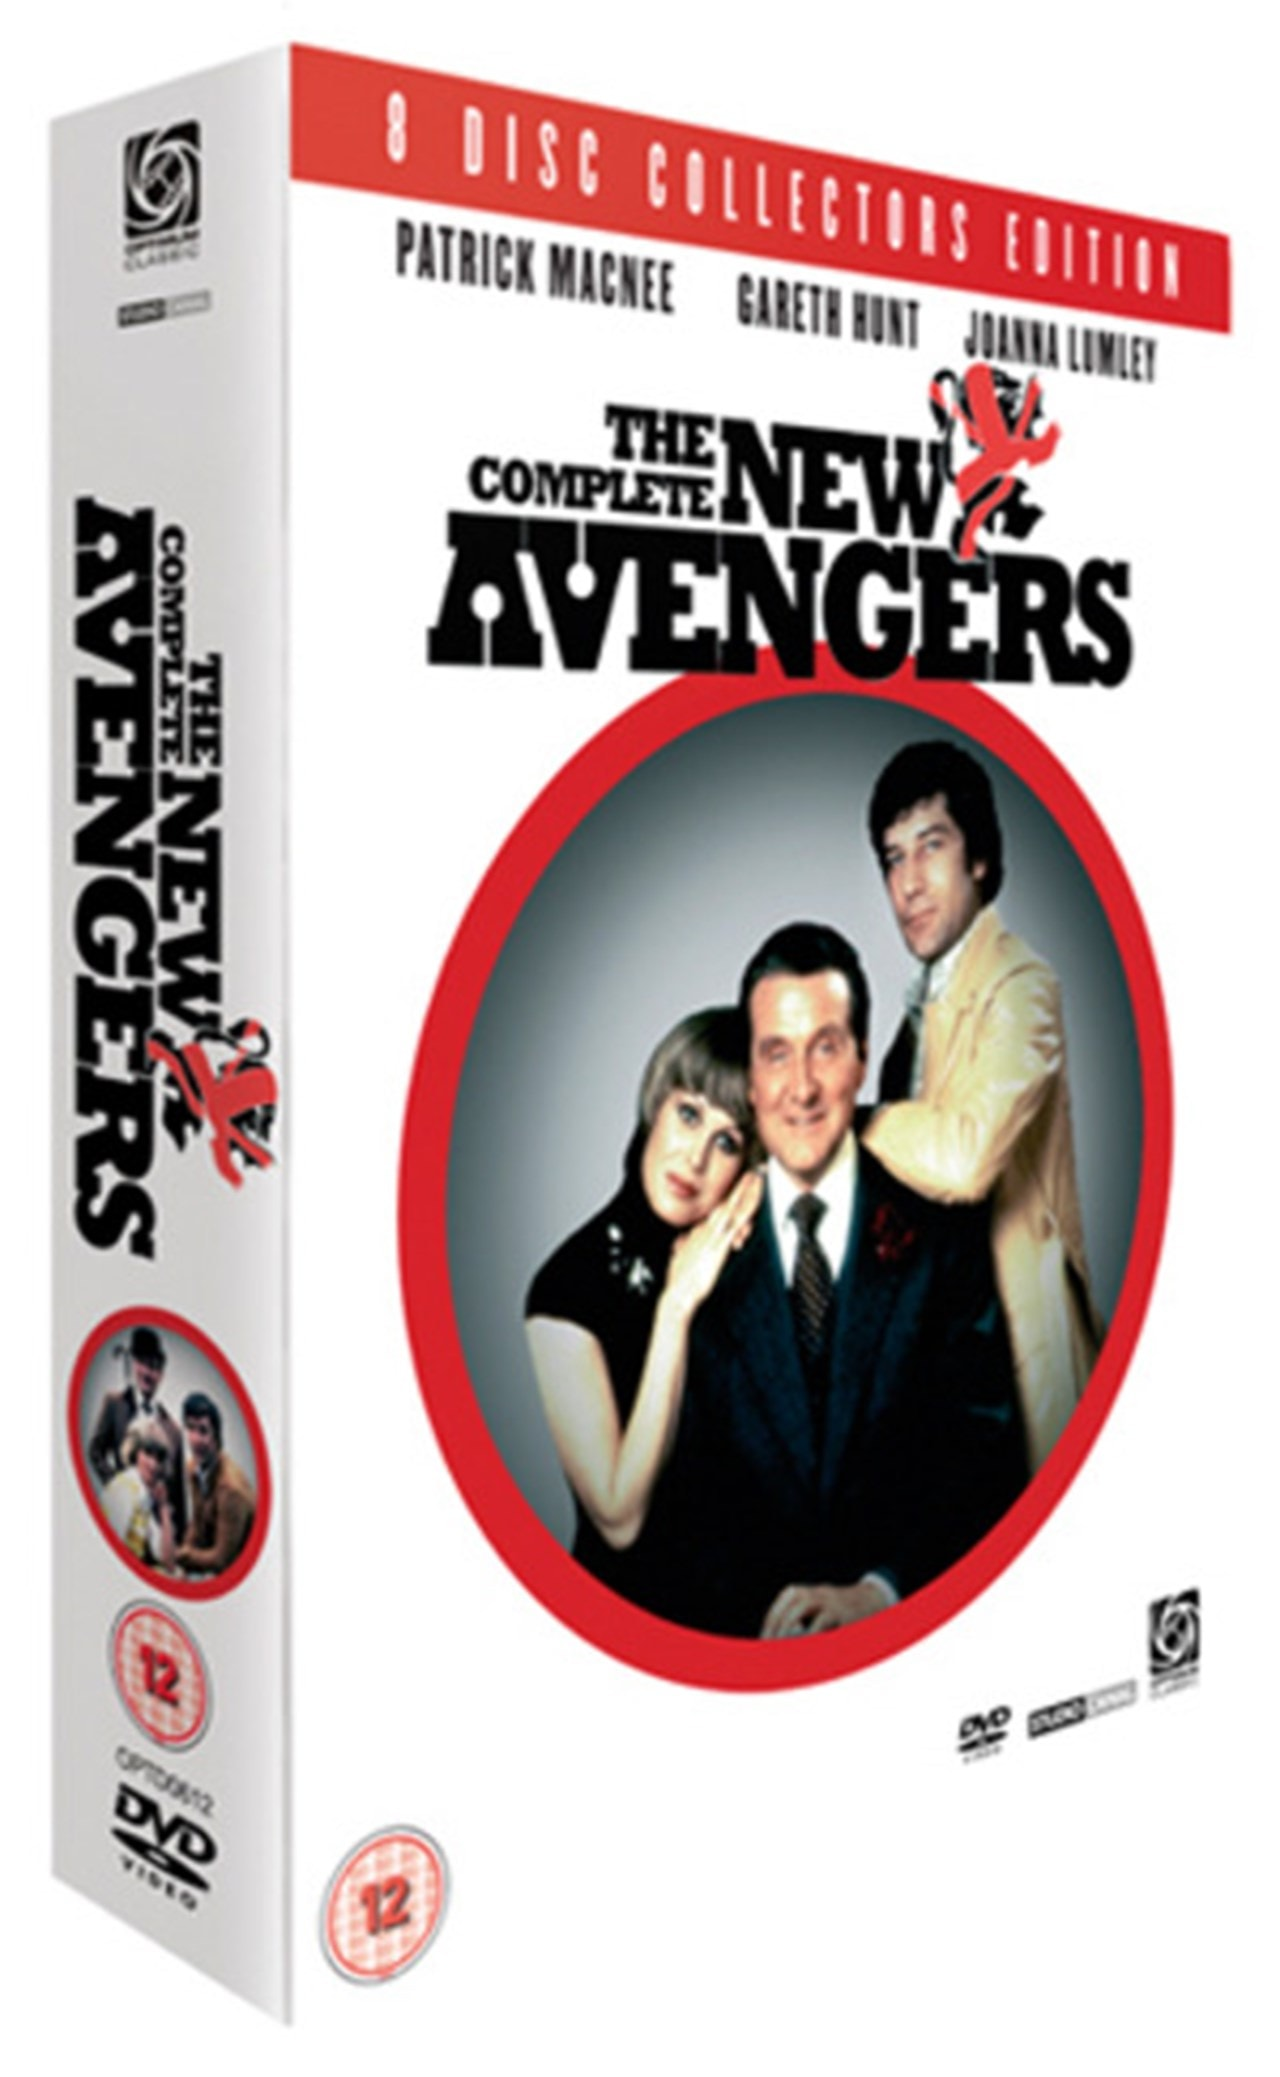 The New Avengers: The Complete Collection - 1